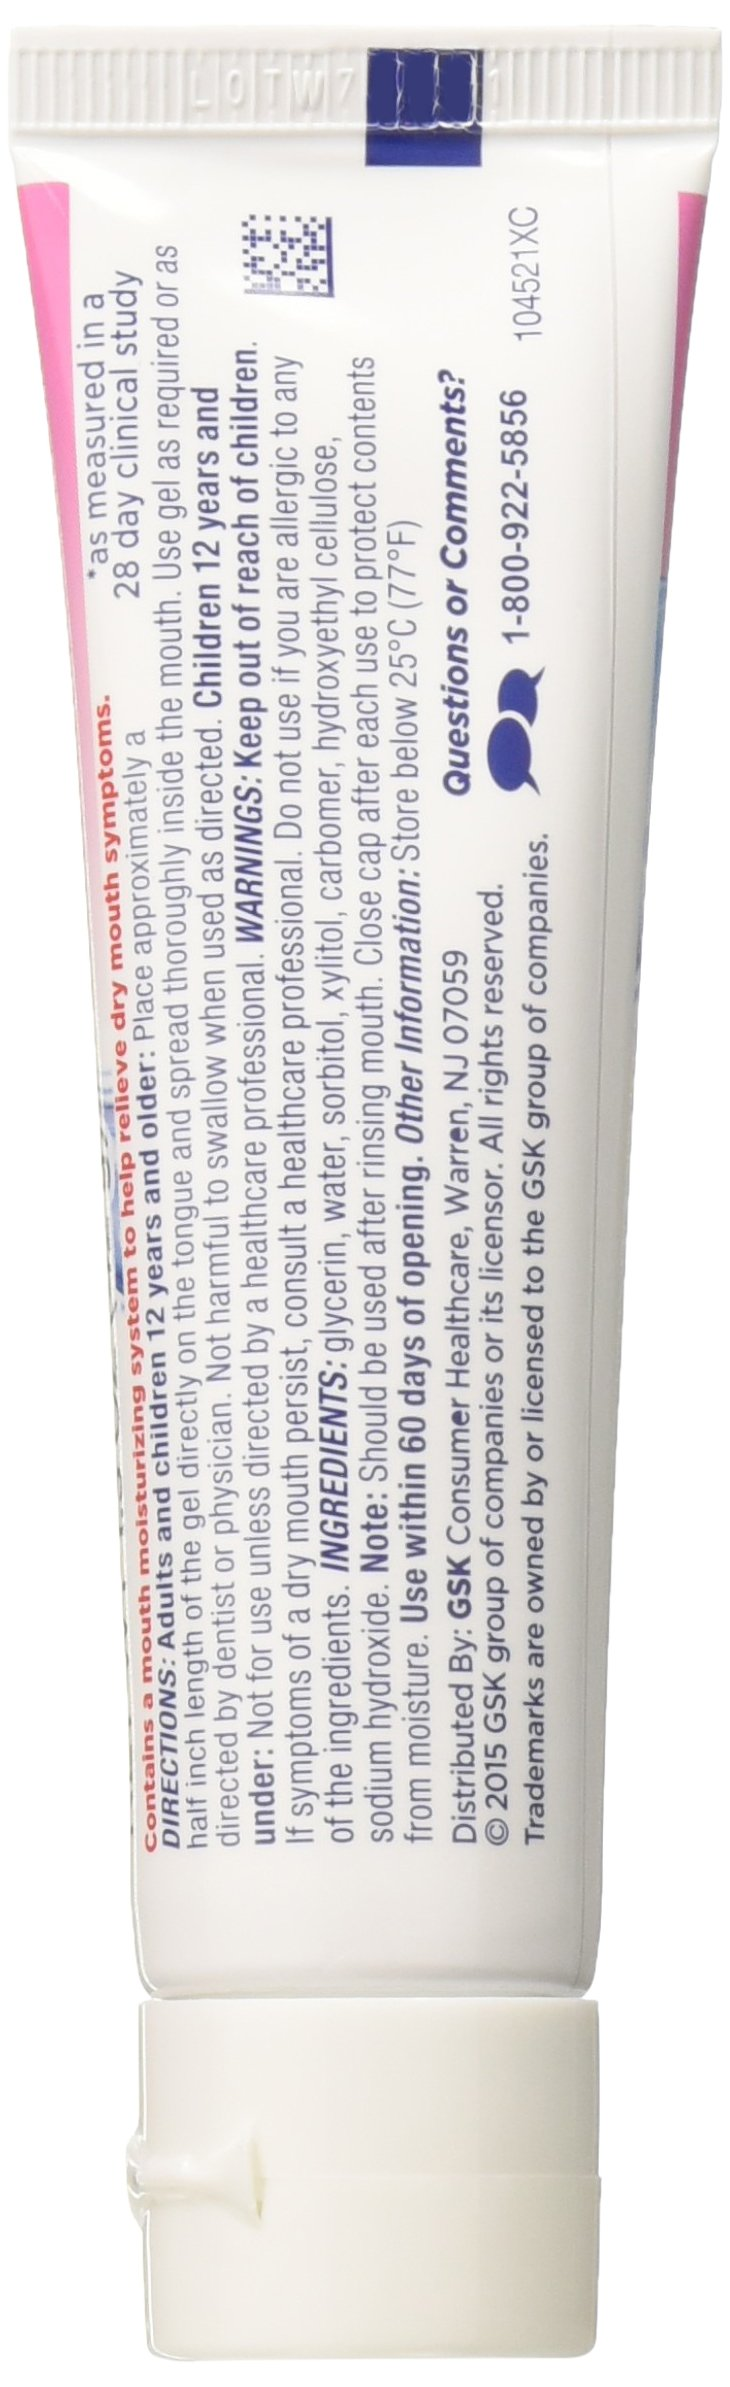 Biotene OralBalance Moisturizing Gel Flavor-Free, Alcohol-Free, for Dry Mouth, 1.5 ounce (Pack of 3) by Biotène (Image #5)